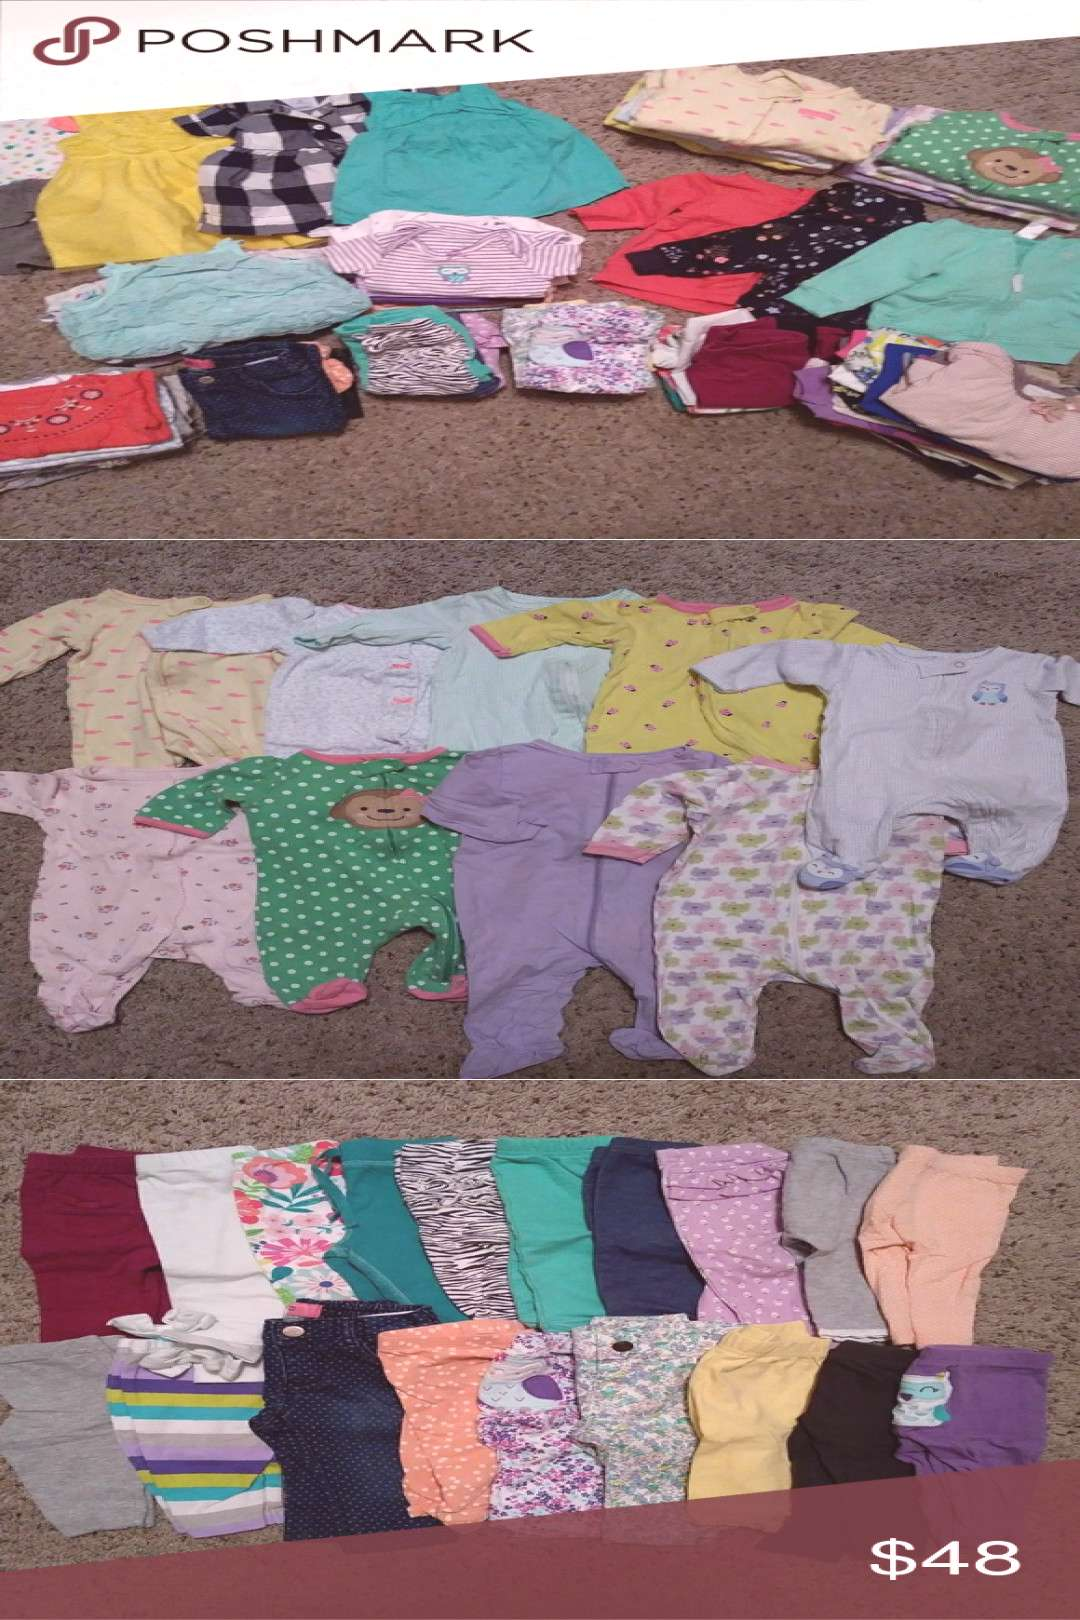 80+ Piece Baby Girl Clothes Size 3-6 Months Assortment of sleepers onesies pants tops dresses aamp 8